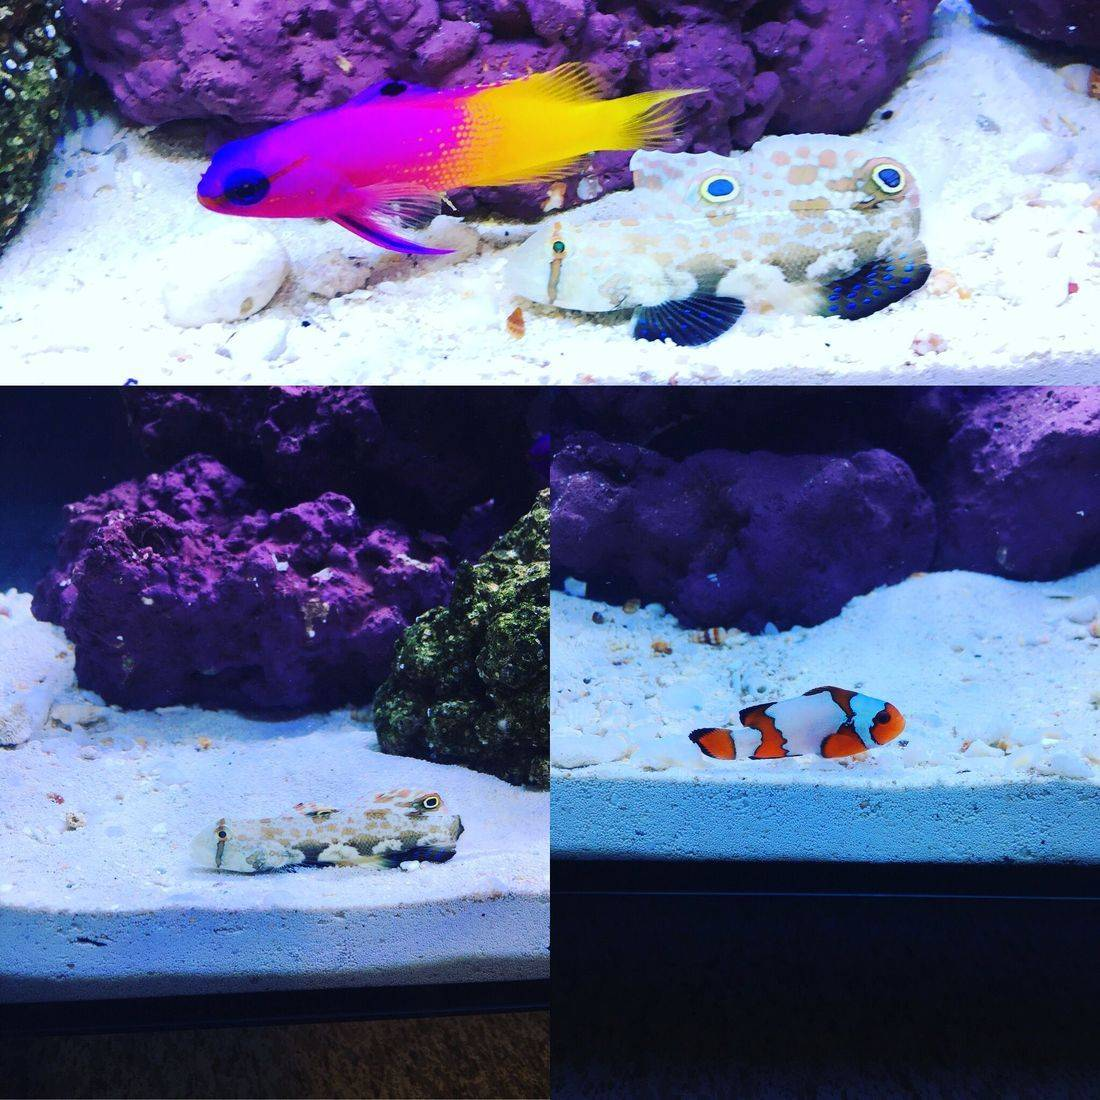 saltwater, clownfish, live rock